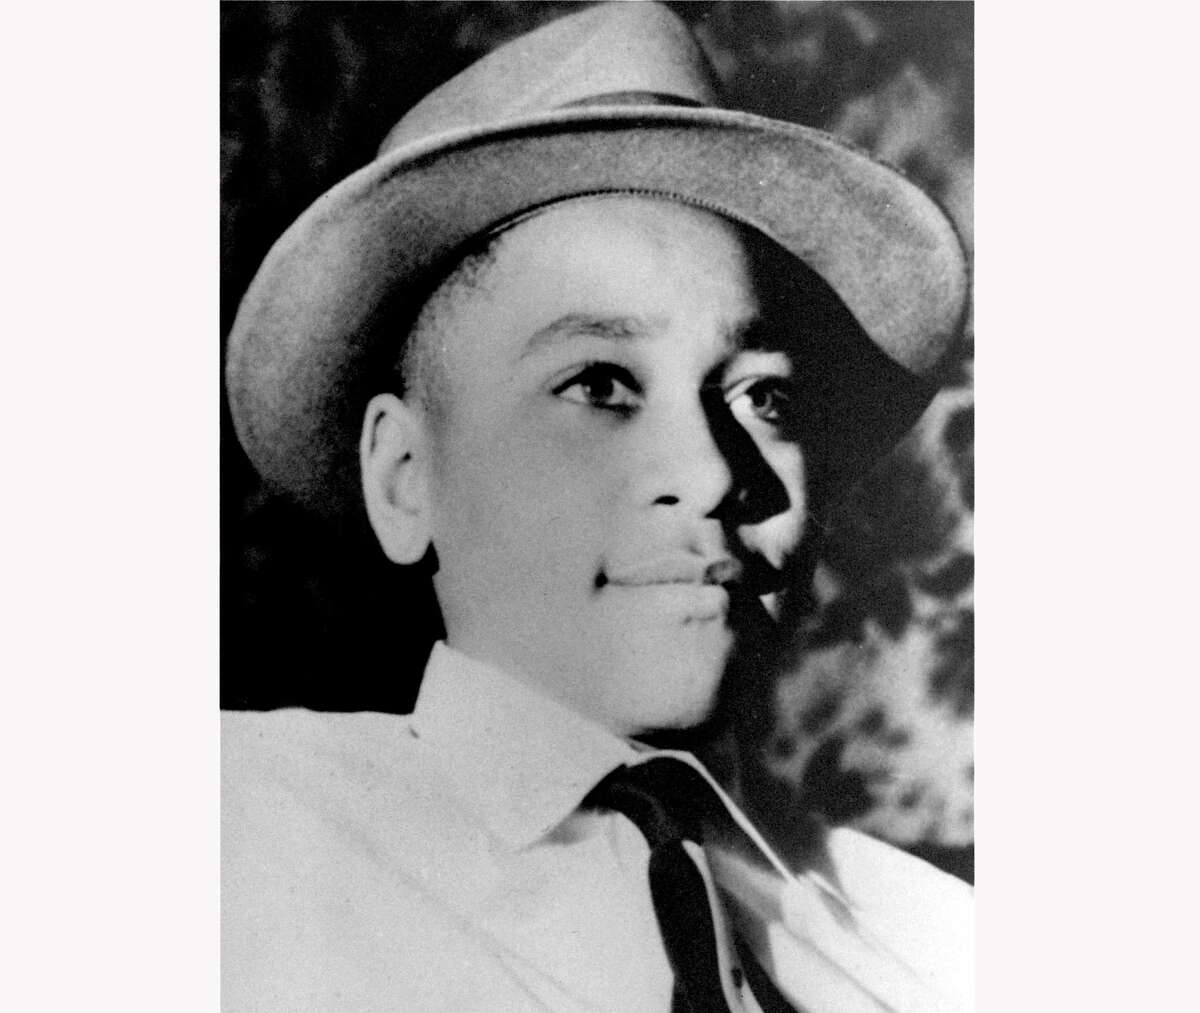 This undated file photo shows Emmett Louis Till, a 14-year-old black Chicago boy, who was kidnapped, tortured and murdered in 1955 after he allegedly whistled at a white woman in Mississippi. The teenager's brutal killing in Mississippi helped inspire the civil rights movement more than 60 years ago.